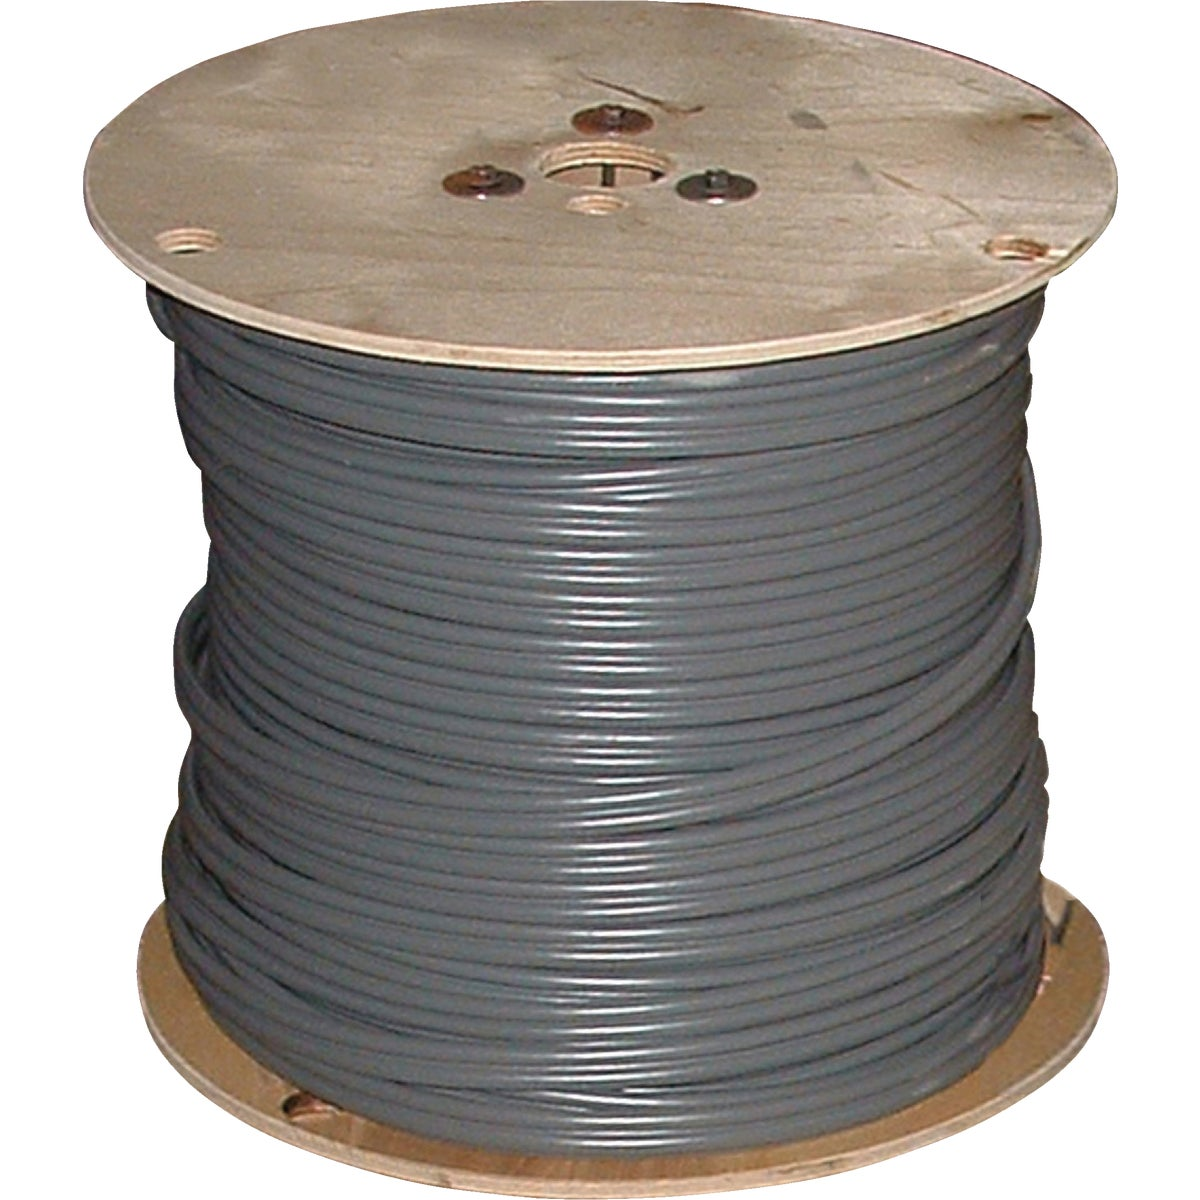 1000' 14-2 UFW/G WIRE - 13054201 by Southwire Company